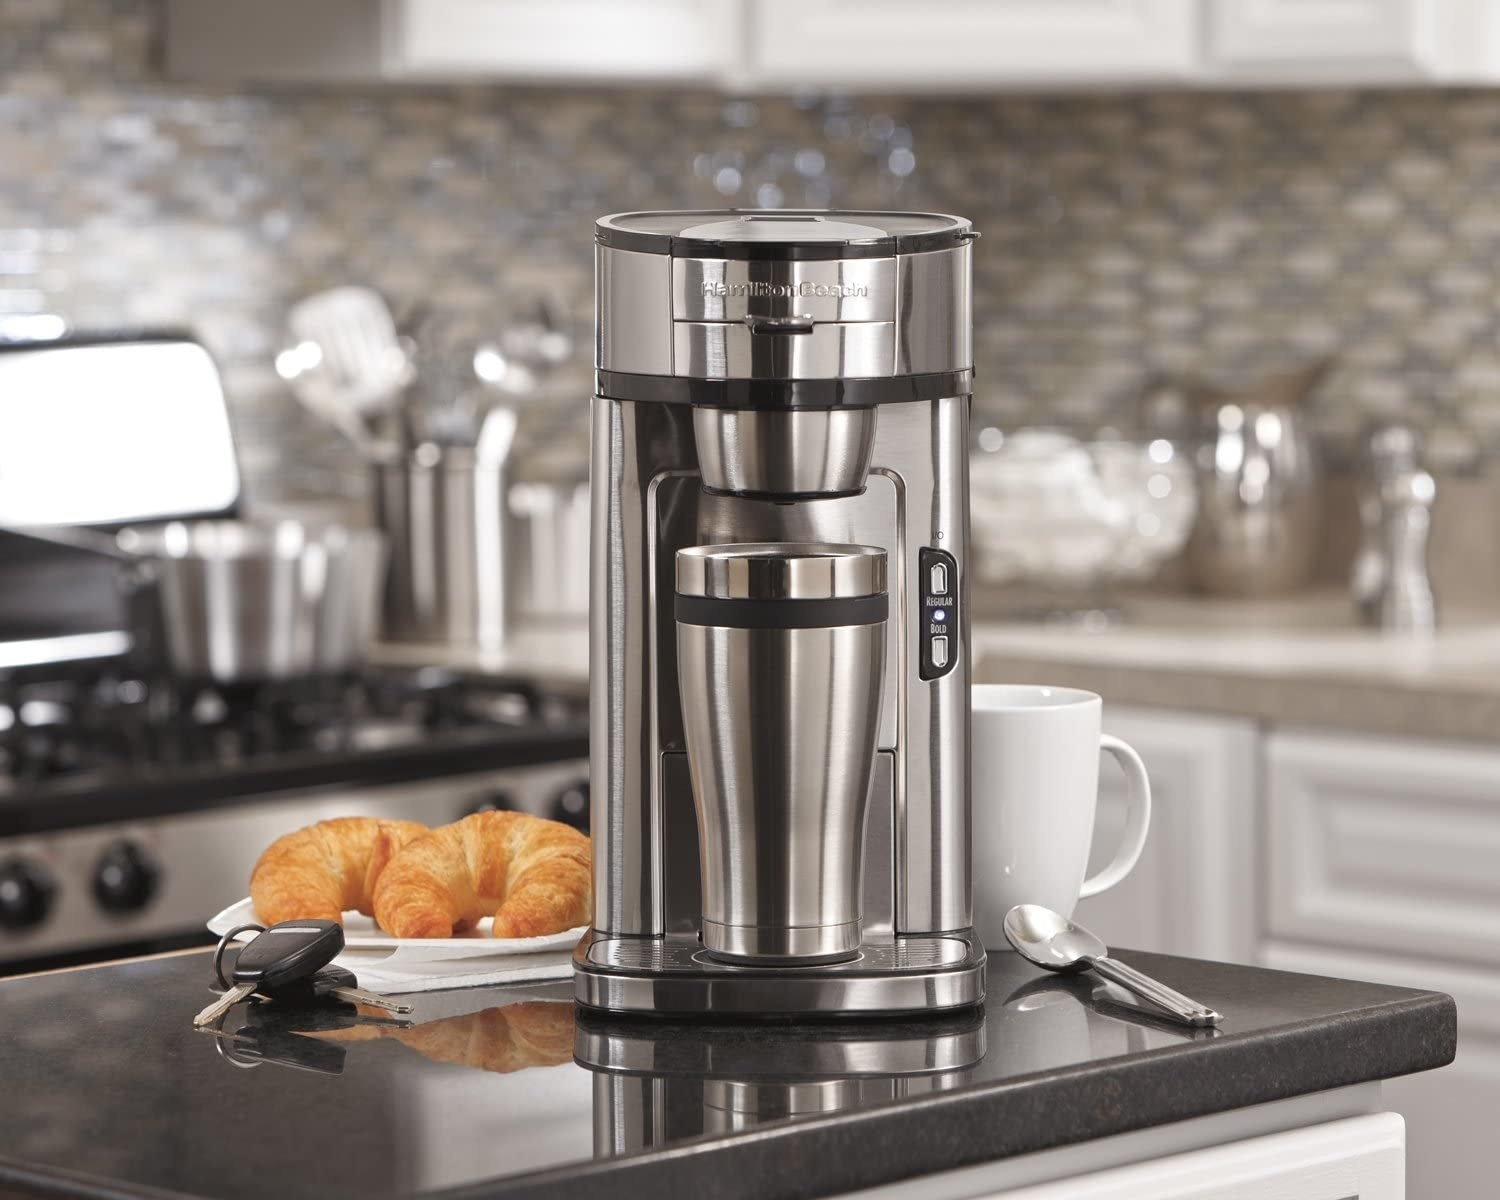 The coffee maker with a stainless stell mug insie